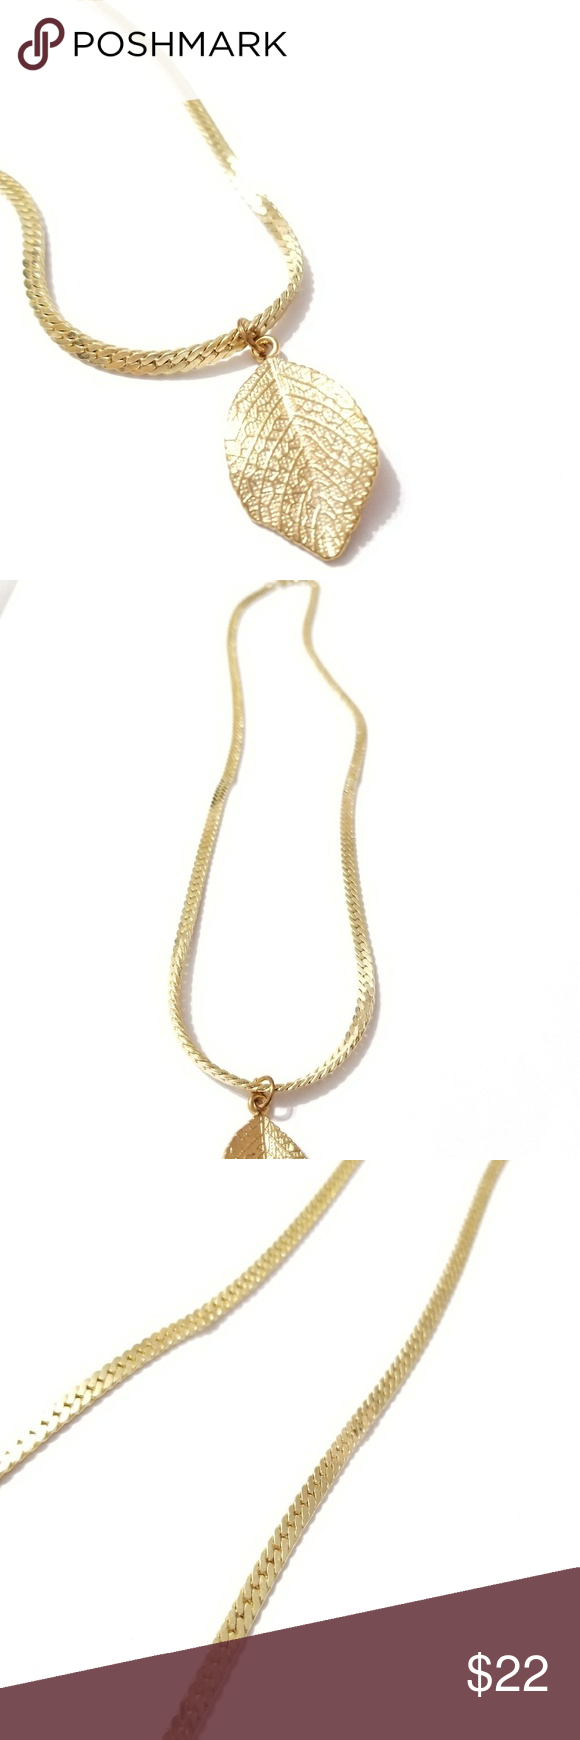 14kgp Gold Plated 9 Inch Necklace With Leaf Pendan Necklace Gold Leaf Pendant